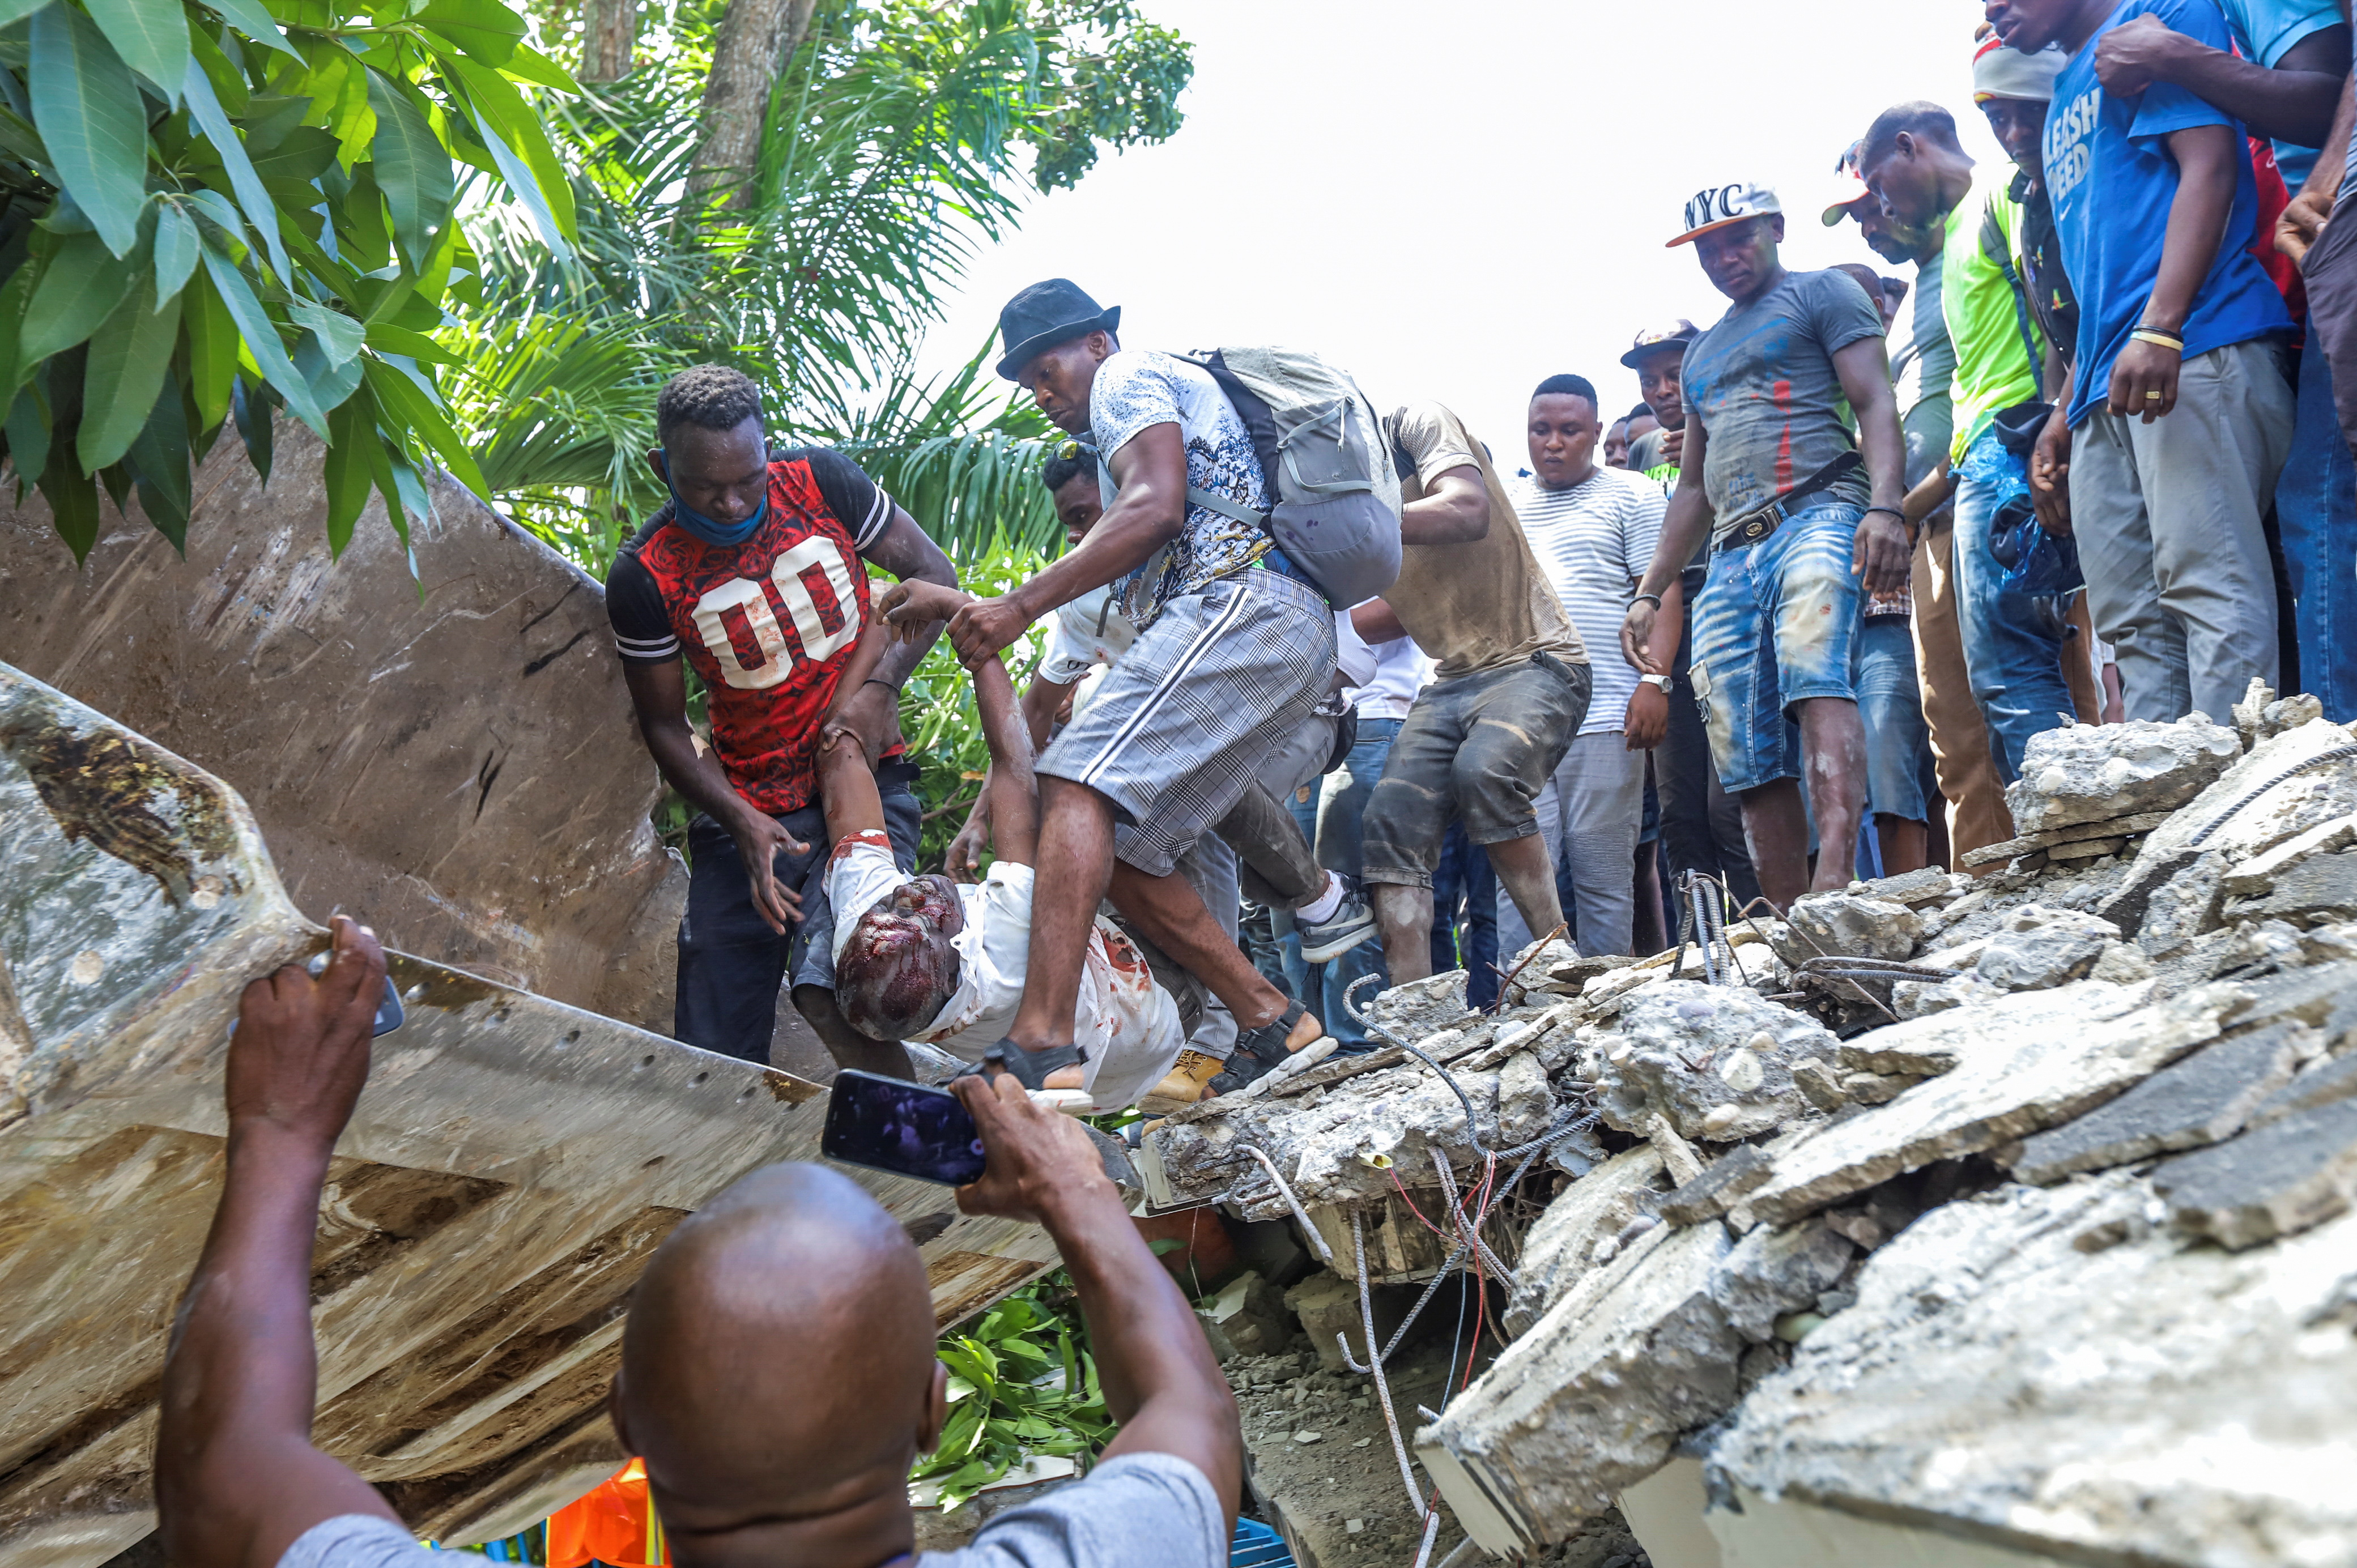 SENSITIVE MATERIAL. THIS IMAGE MAY OFFEND OR DISTURB People recover the body of politician Jean Gabriel Fortune from the rubble of a hotel following a 7.2 magnitude earthquake in Les Cayes, Haiti August 14, 2021. REUTERS/Ralph Tedy Erol NO RESALES. NO ARCHIVES